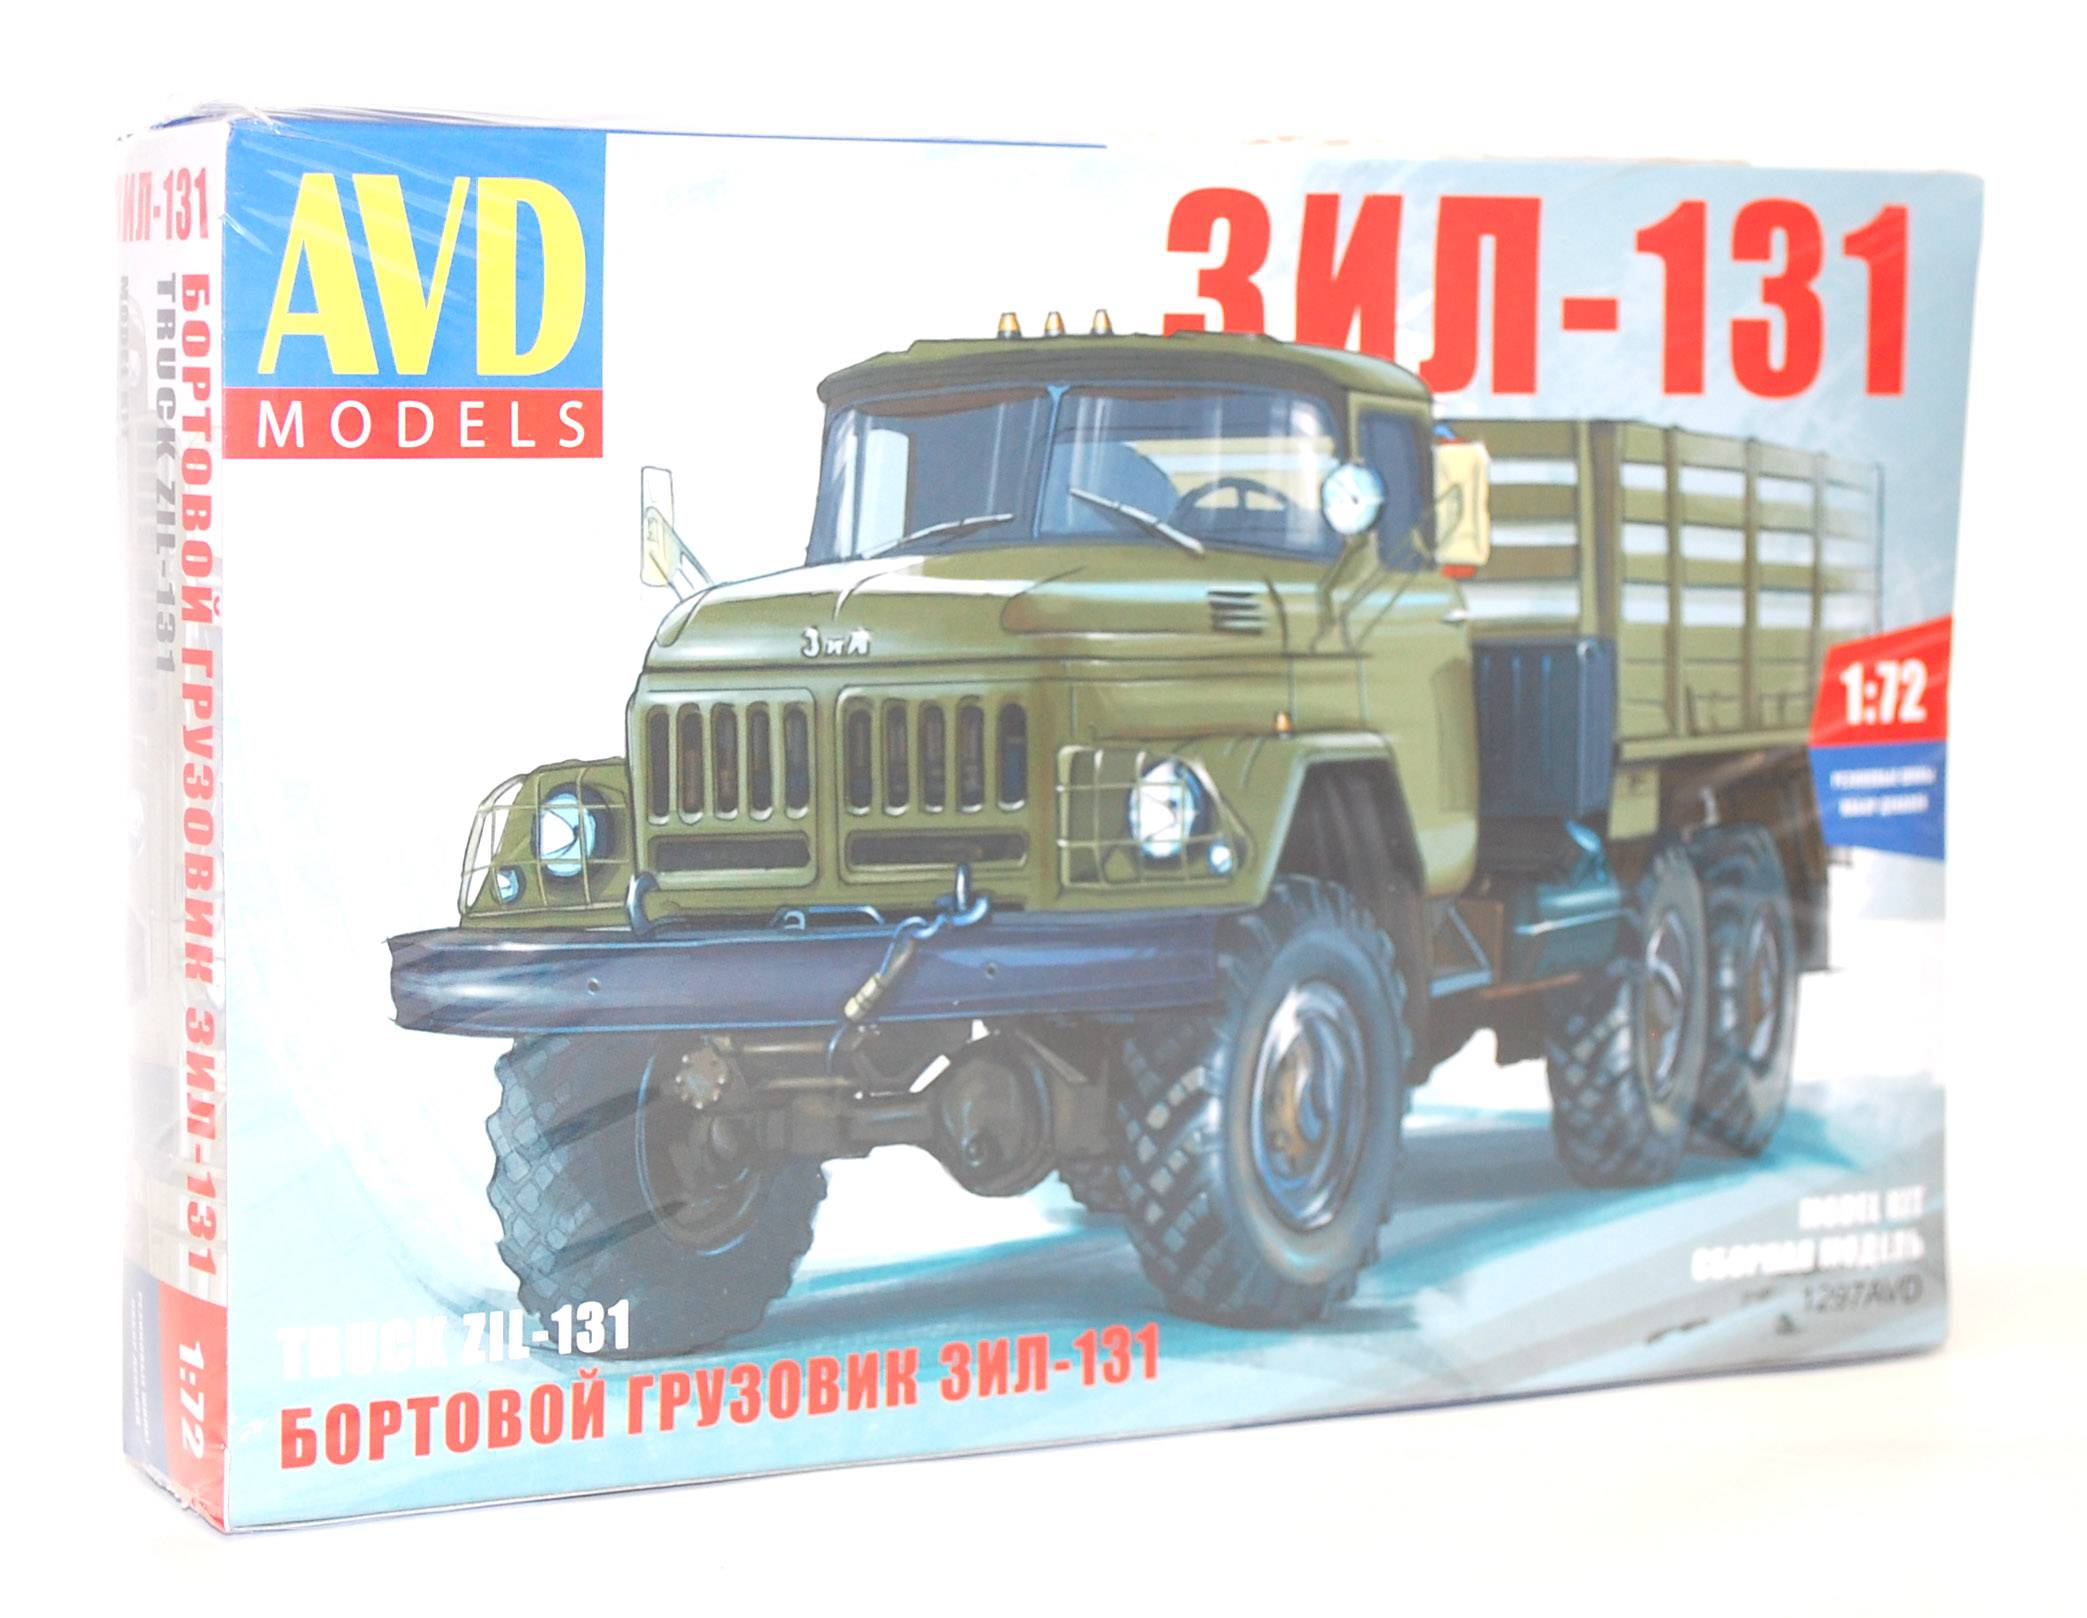 Zil-131 - model AVD KIT 1:72